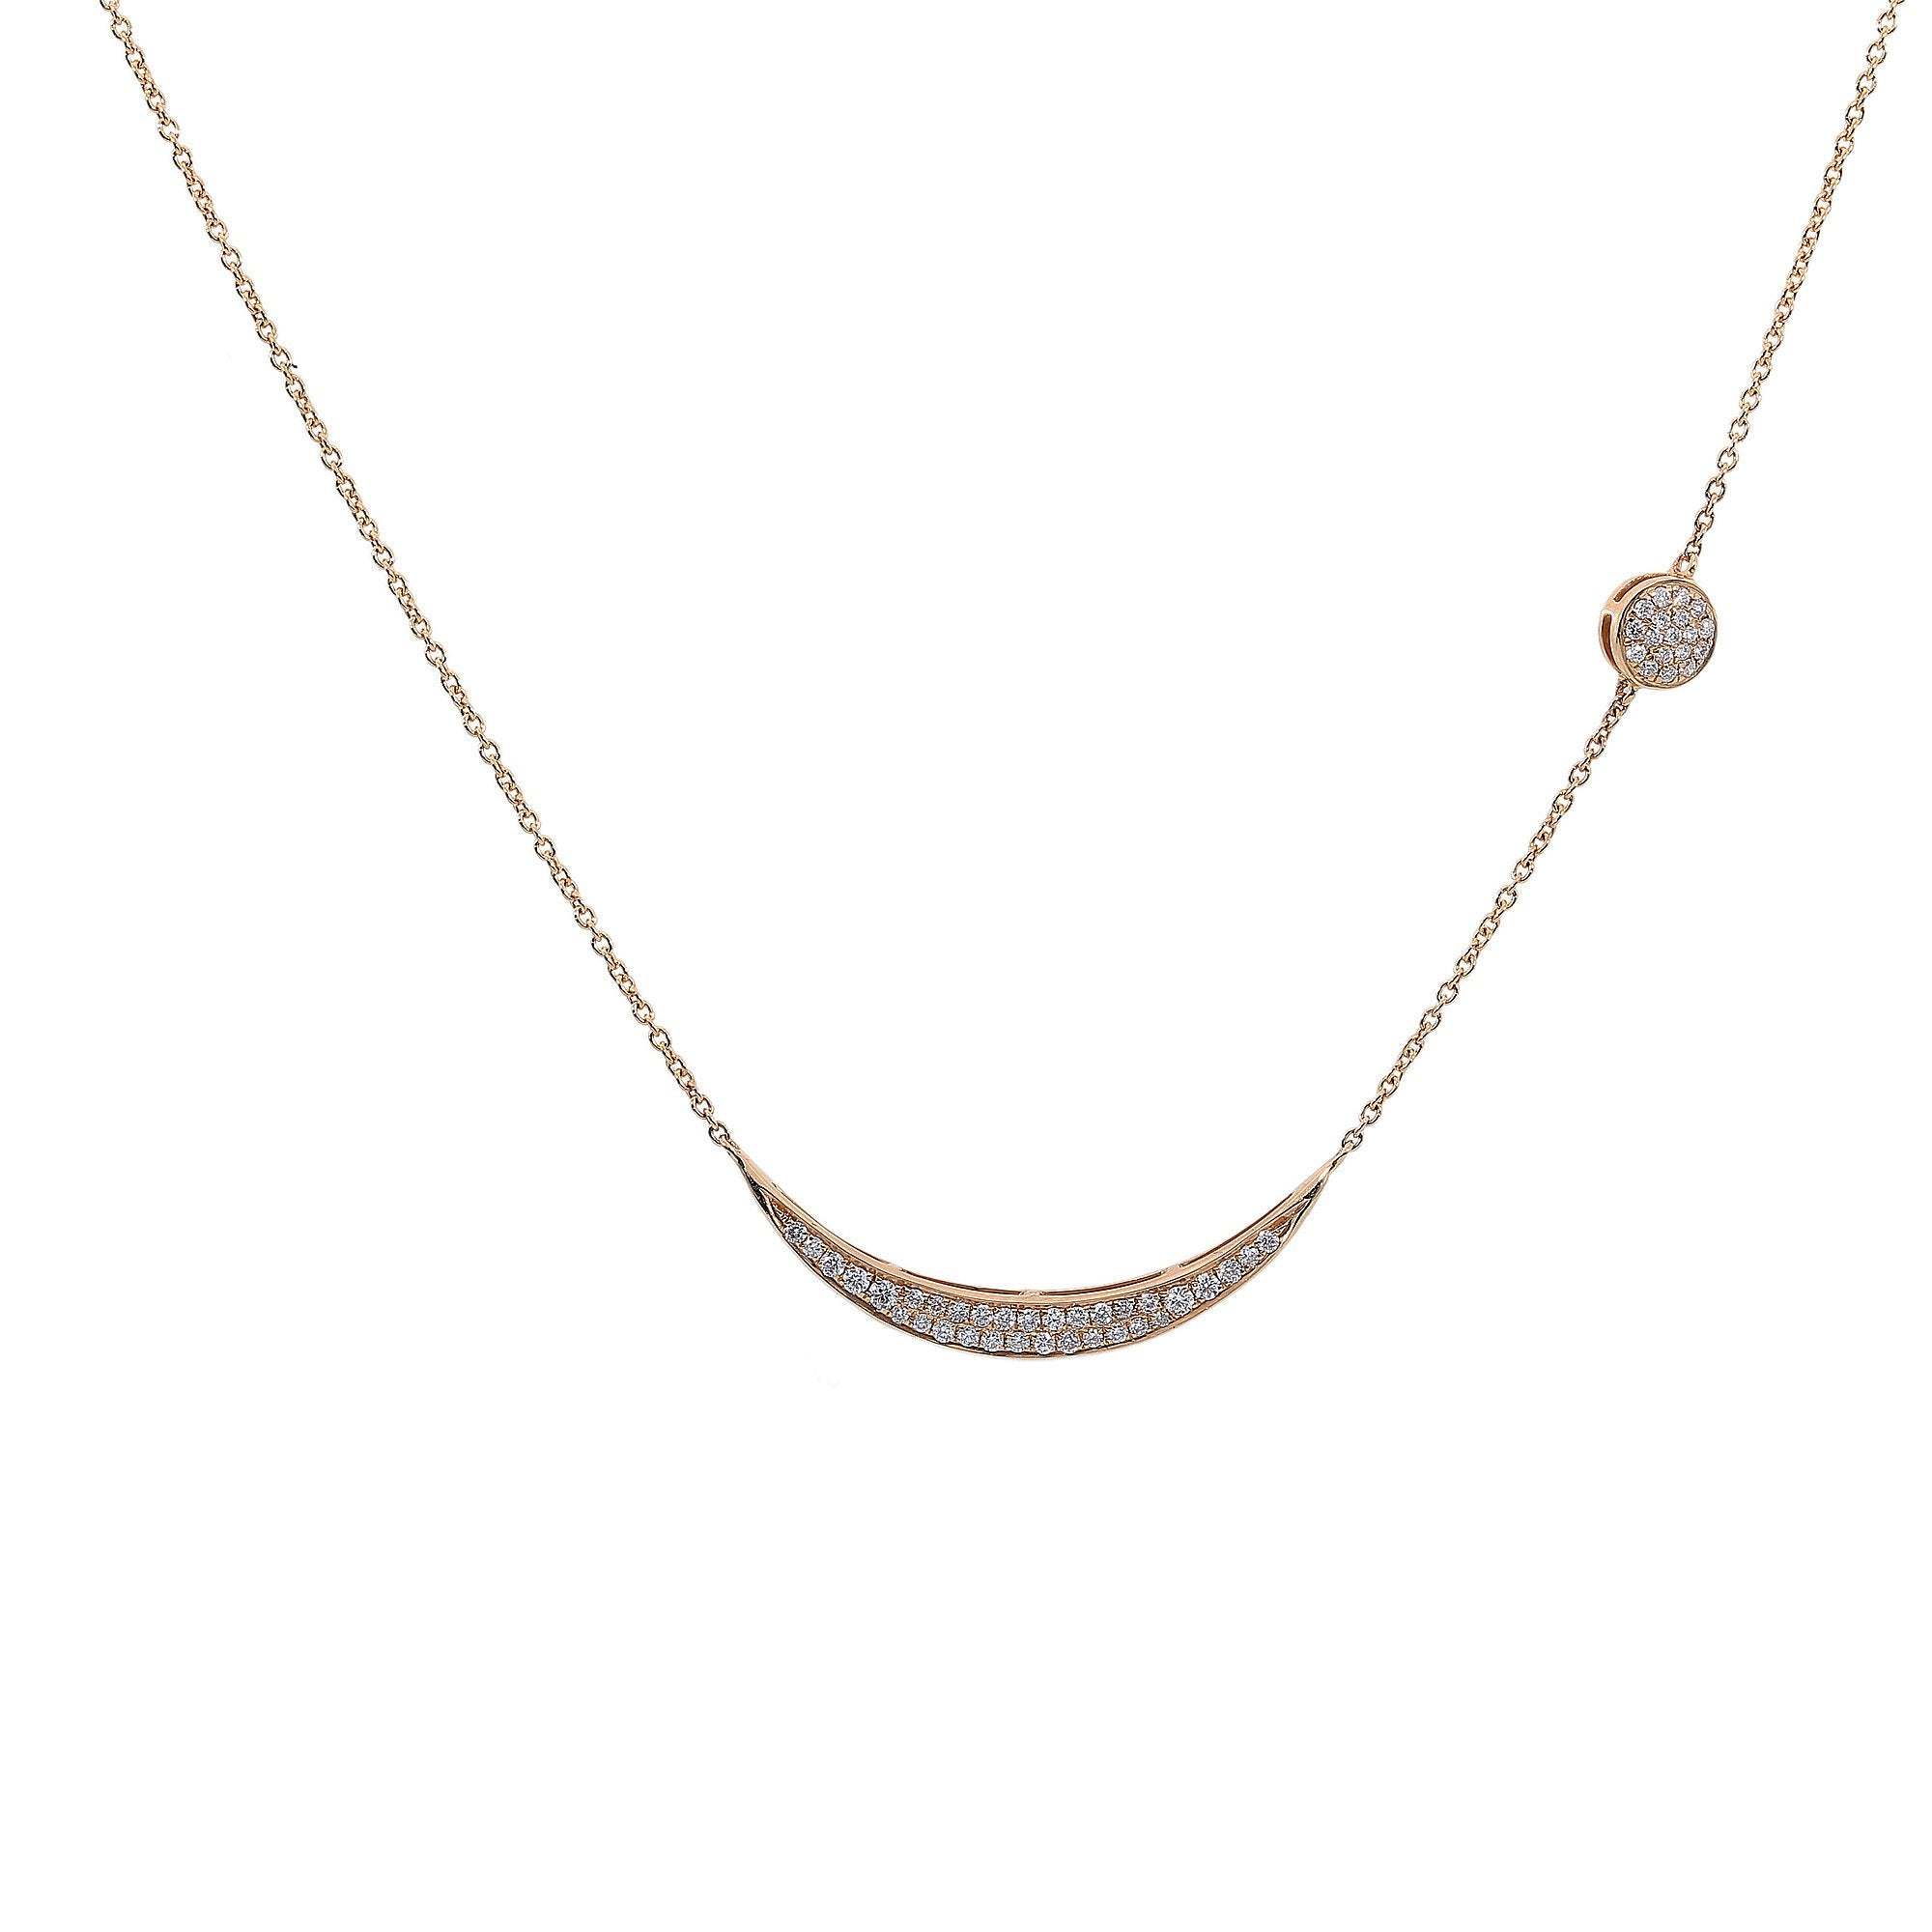 18K Yellow Gold Women Moon Shaped Necklace with Round Pin